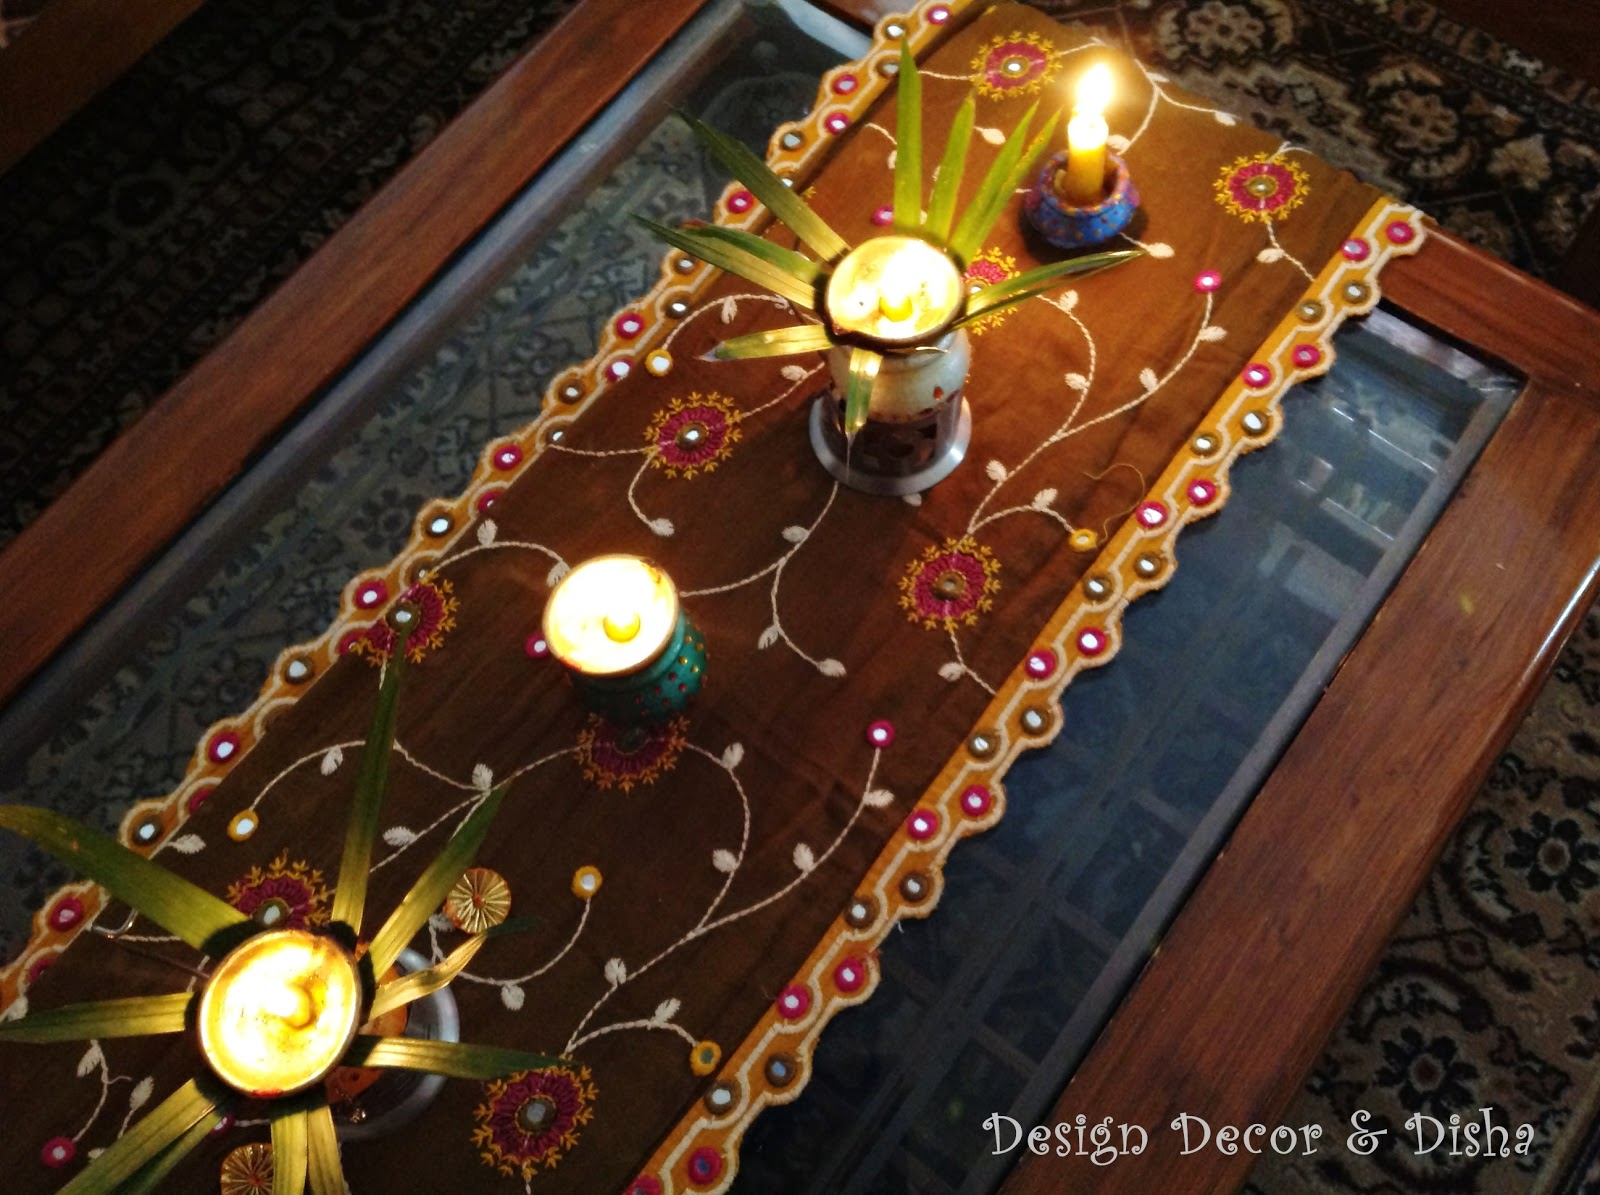 Design Decor Disha Diwali Craft Home Decor Inspiration II